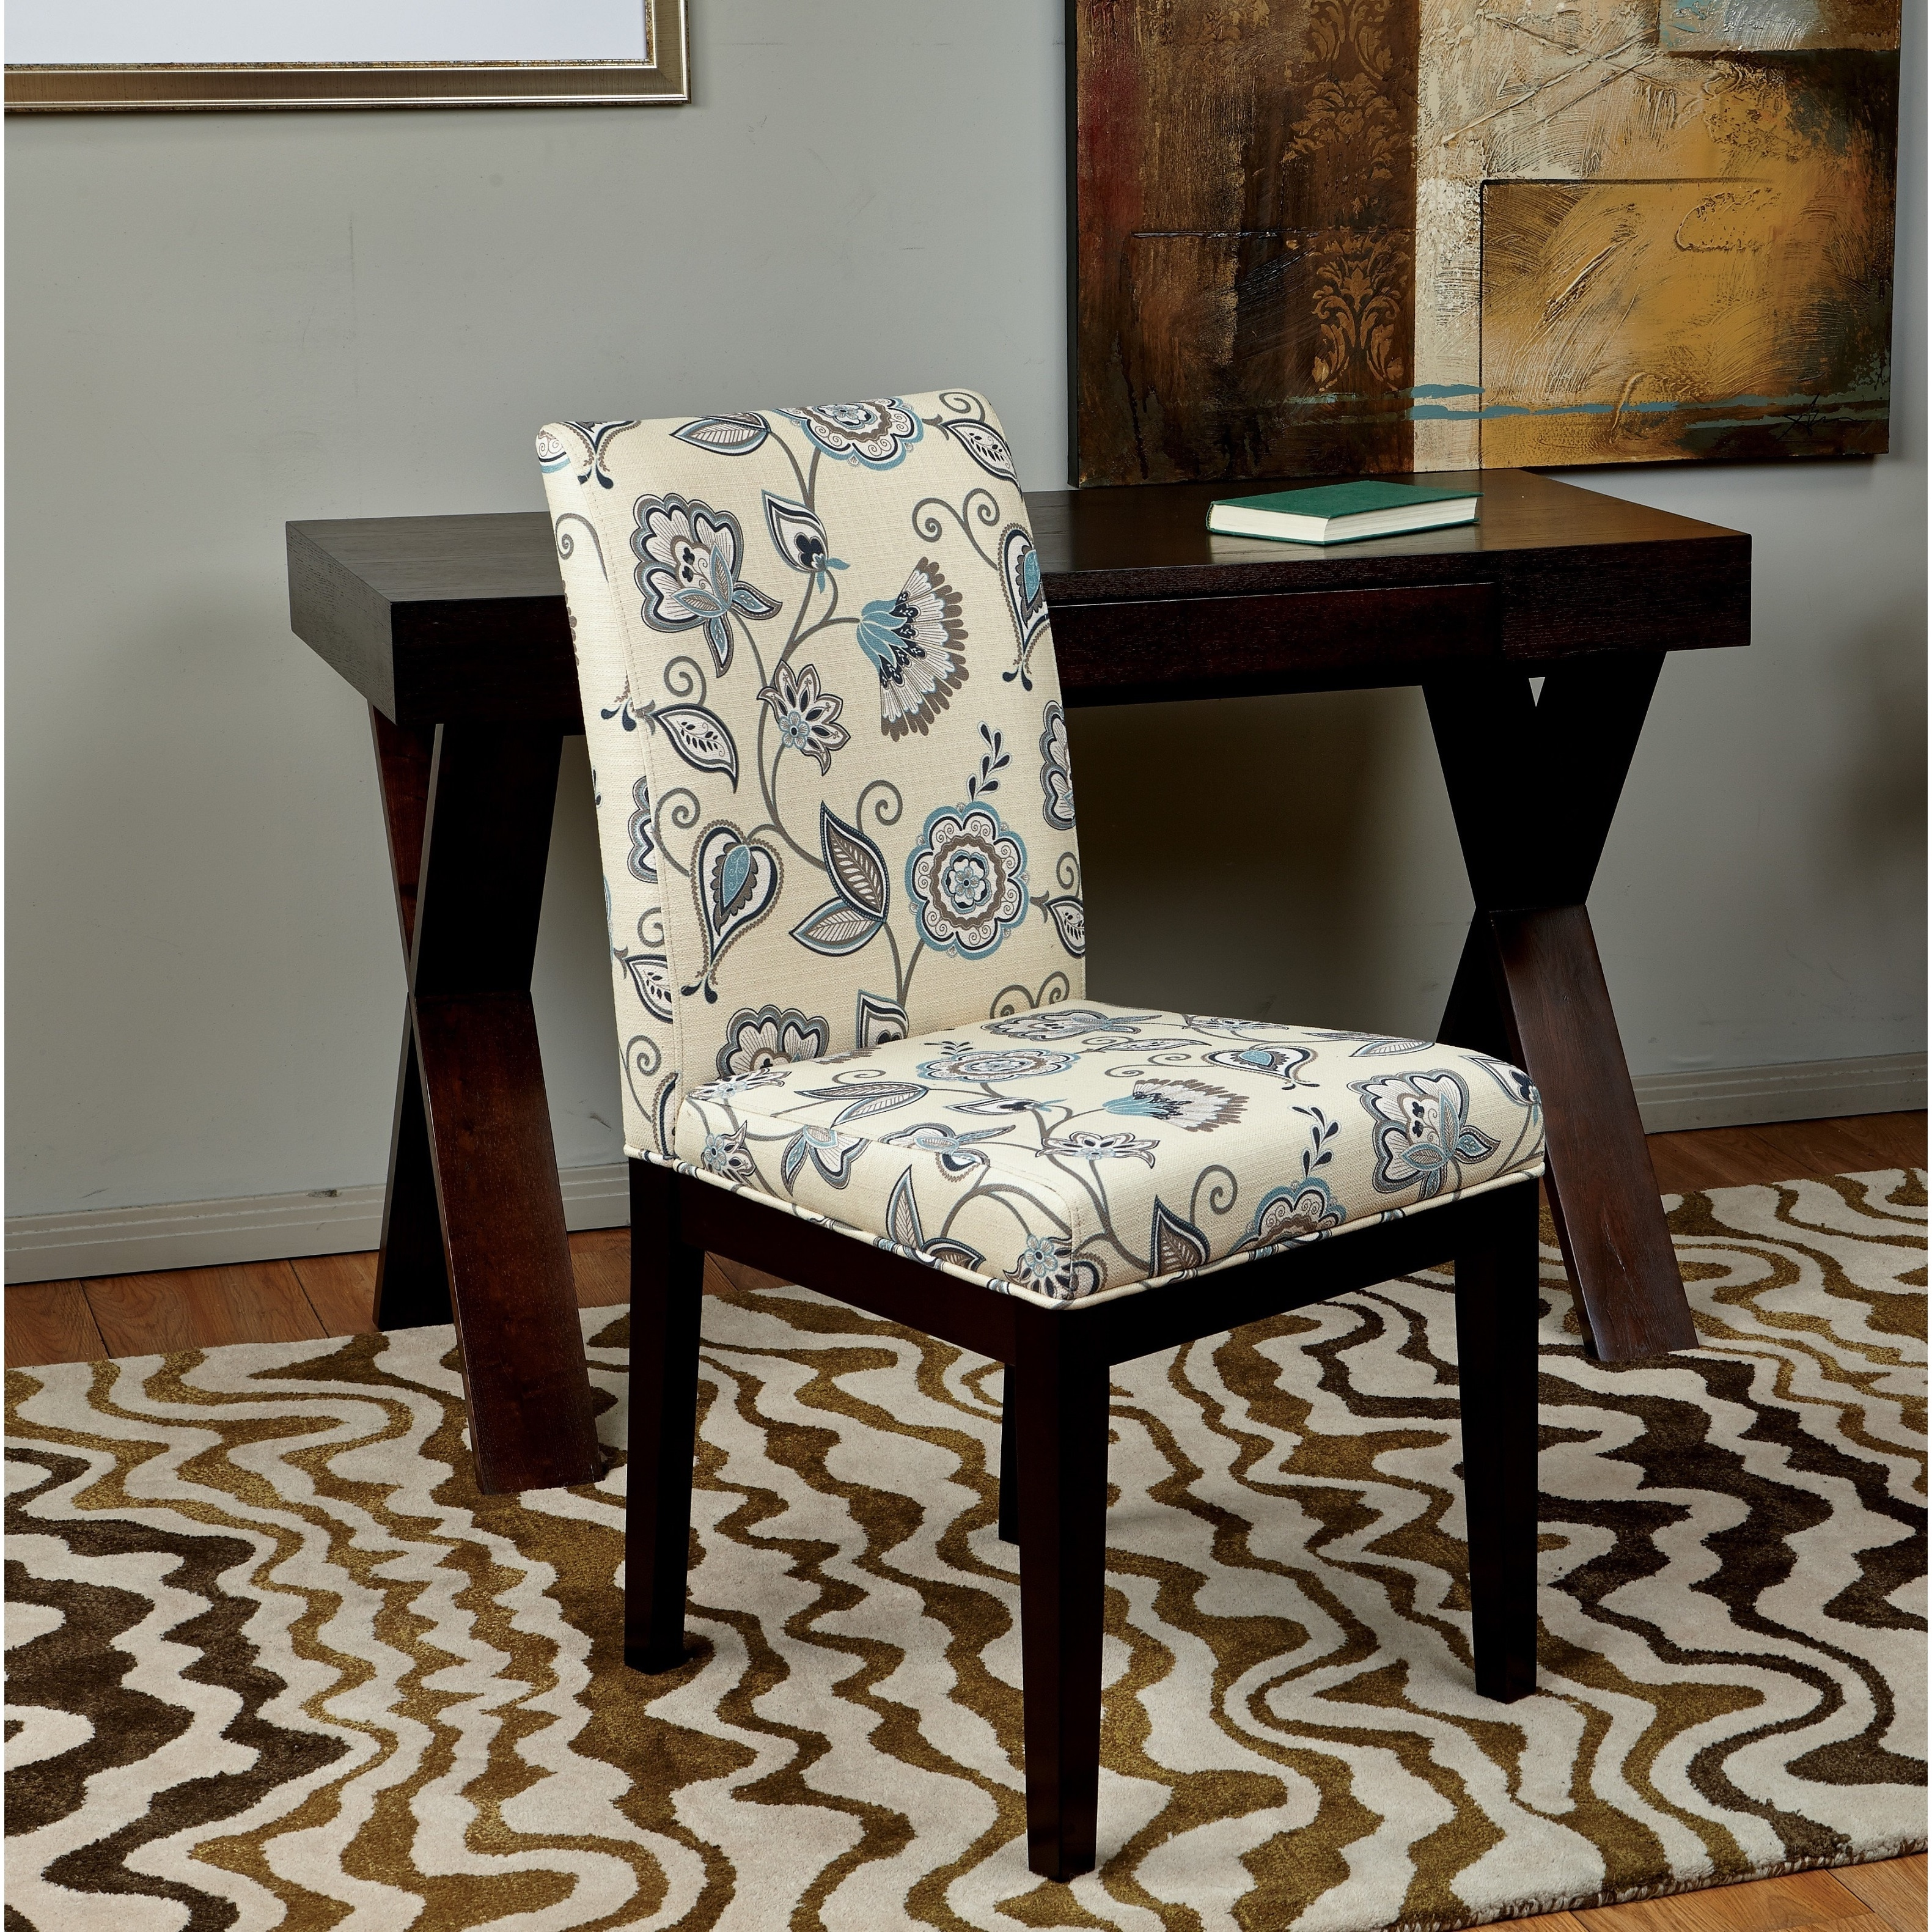 Attirant Shop Office Star Products Dakota Parsons Paisley/Scroll Floral Upholstered  Armless Chair   Free Shipping Today   Overstock.com   8988406